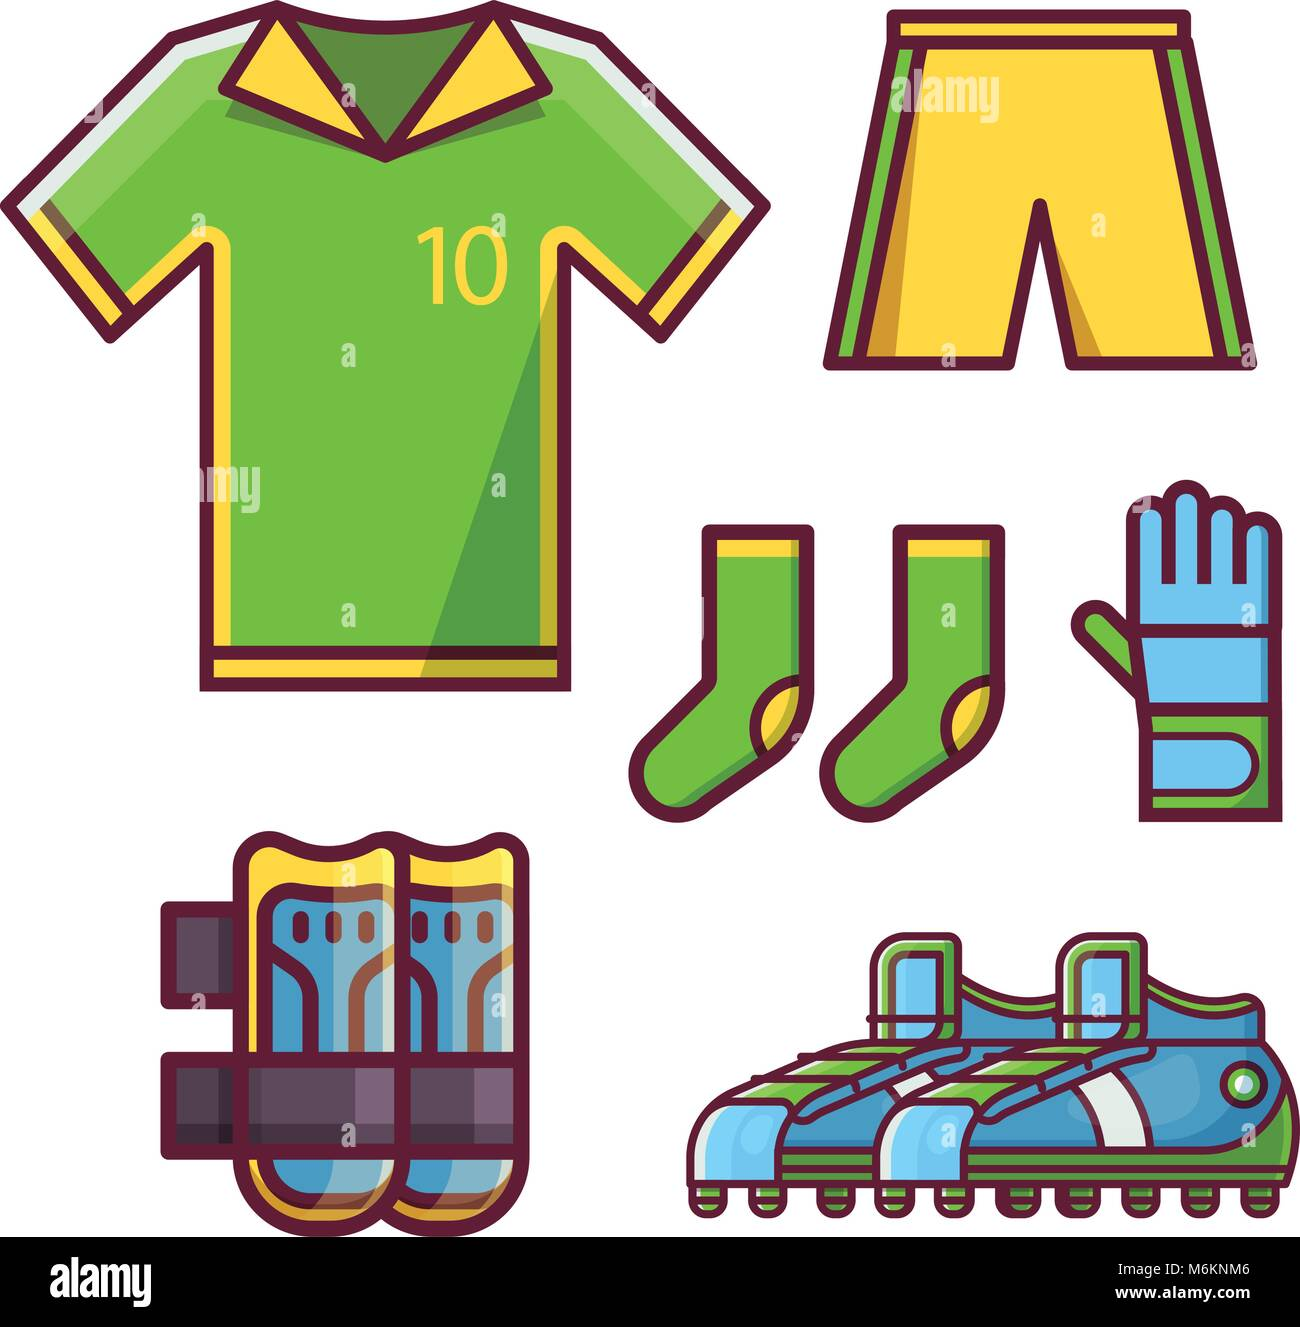 32cf78da7 Soccer Football Team Uniform Set Stock Vector Art   Illustration ...